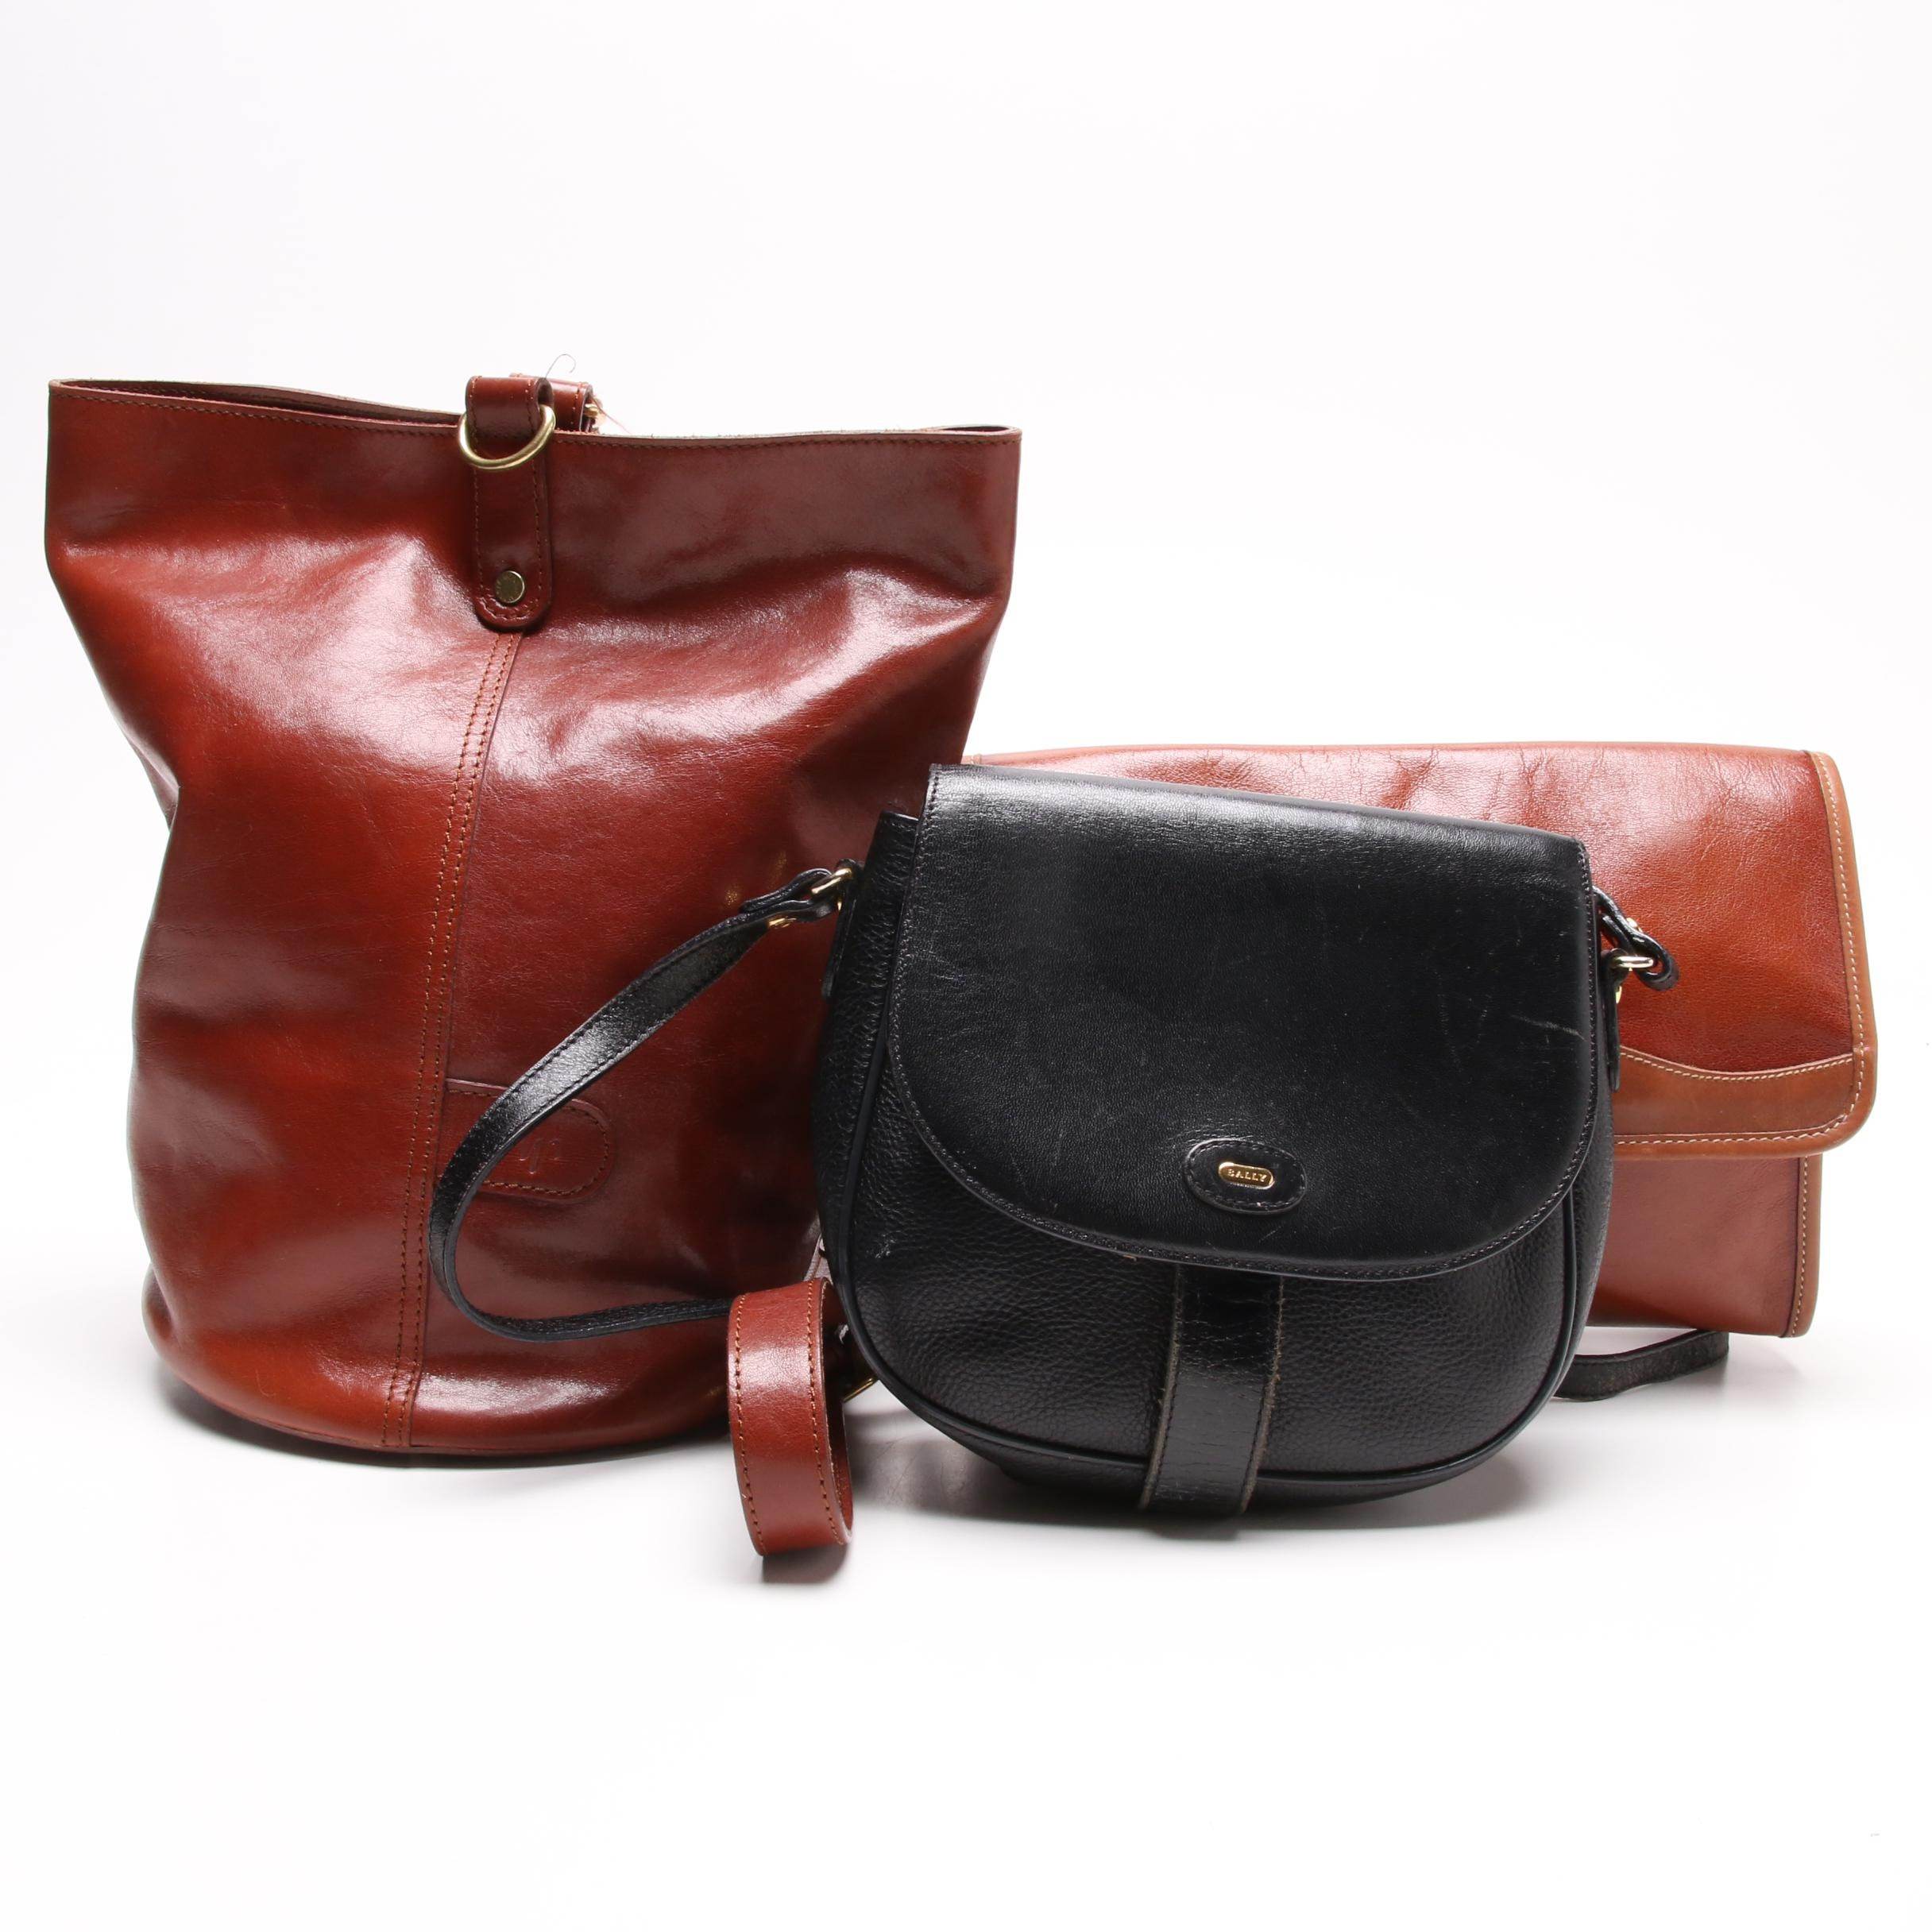 Monsac Original Leather Bucket Bag and Leather Crossbody Bags Including Bally